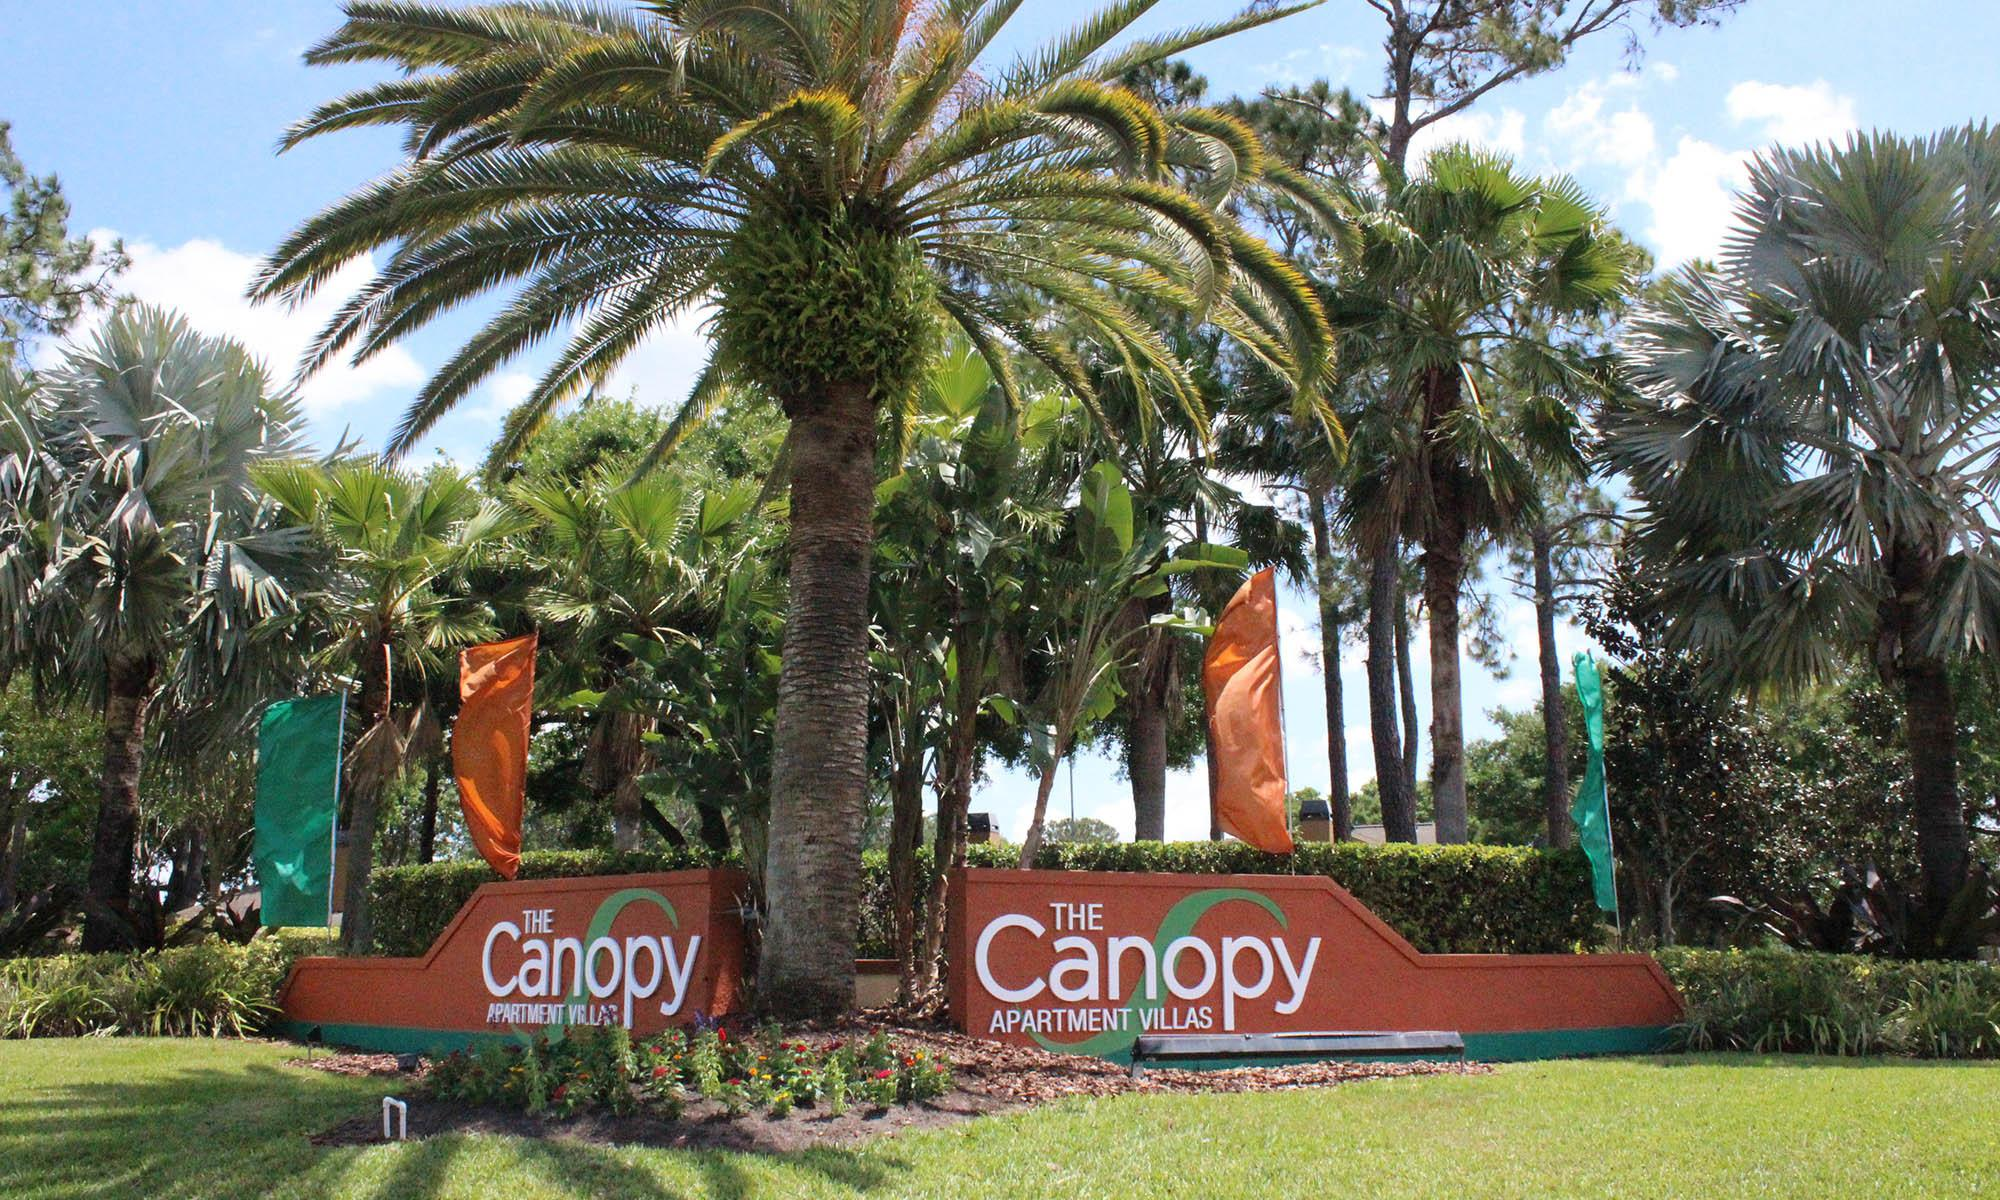 Welcome to Canopy Apartment Villas in Orlando, FL